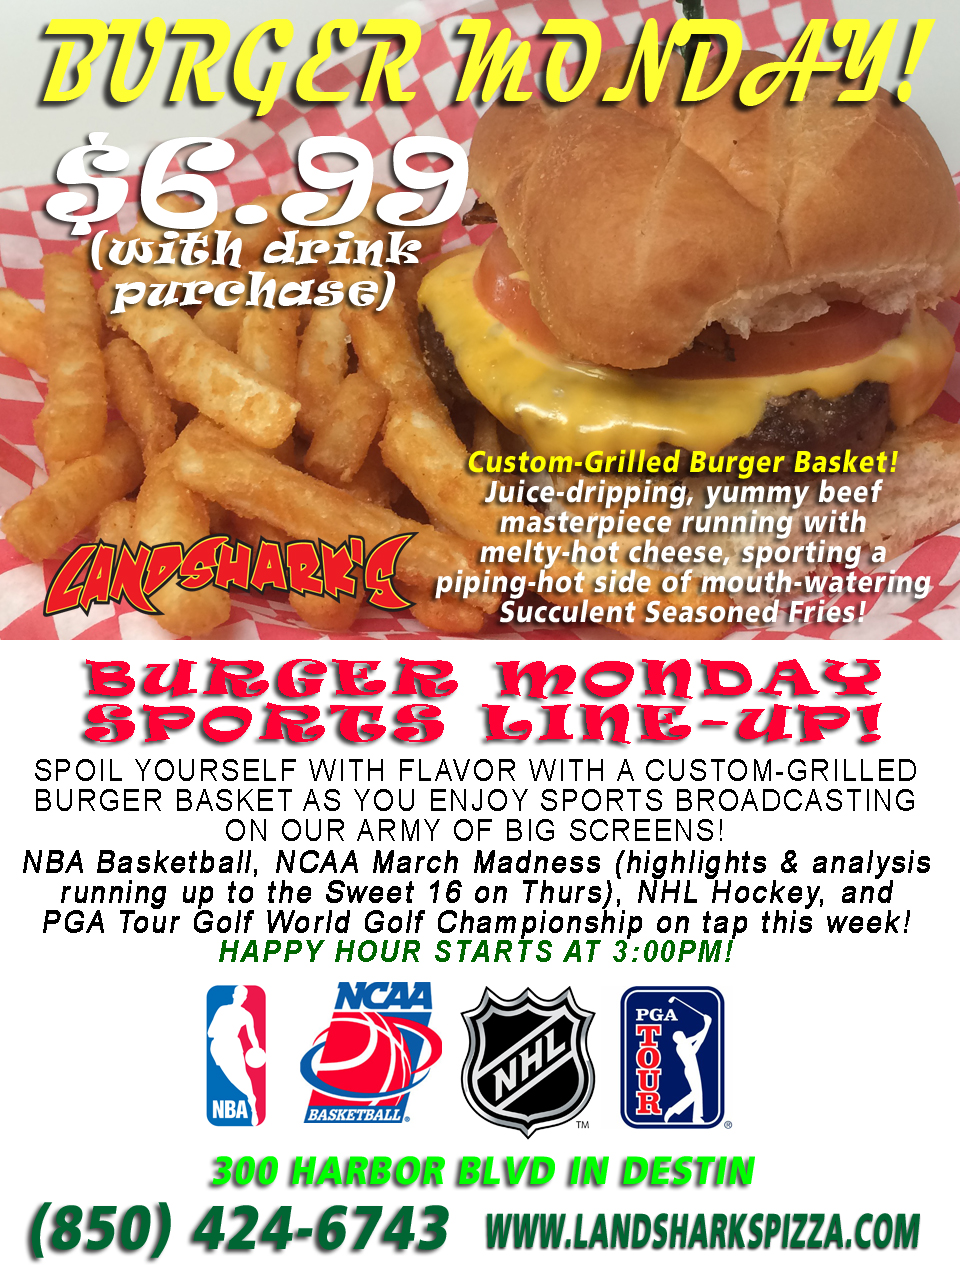 Burger Monday at Landshark's Pizza and Wings in Destin FL 3-21-16